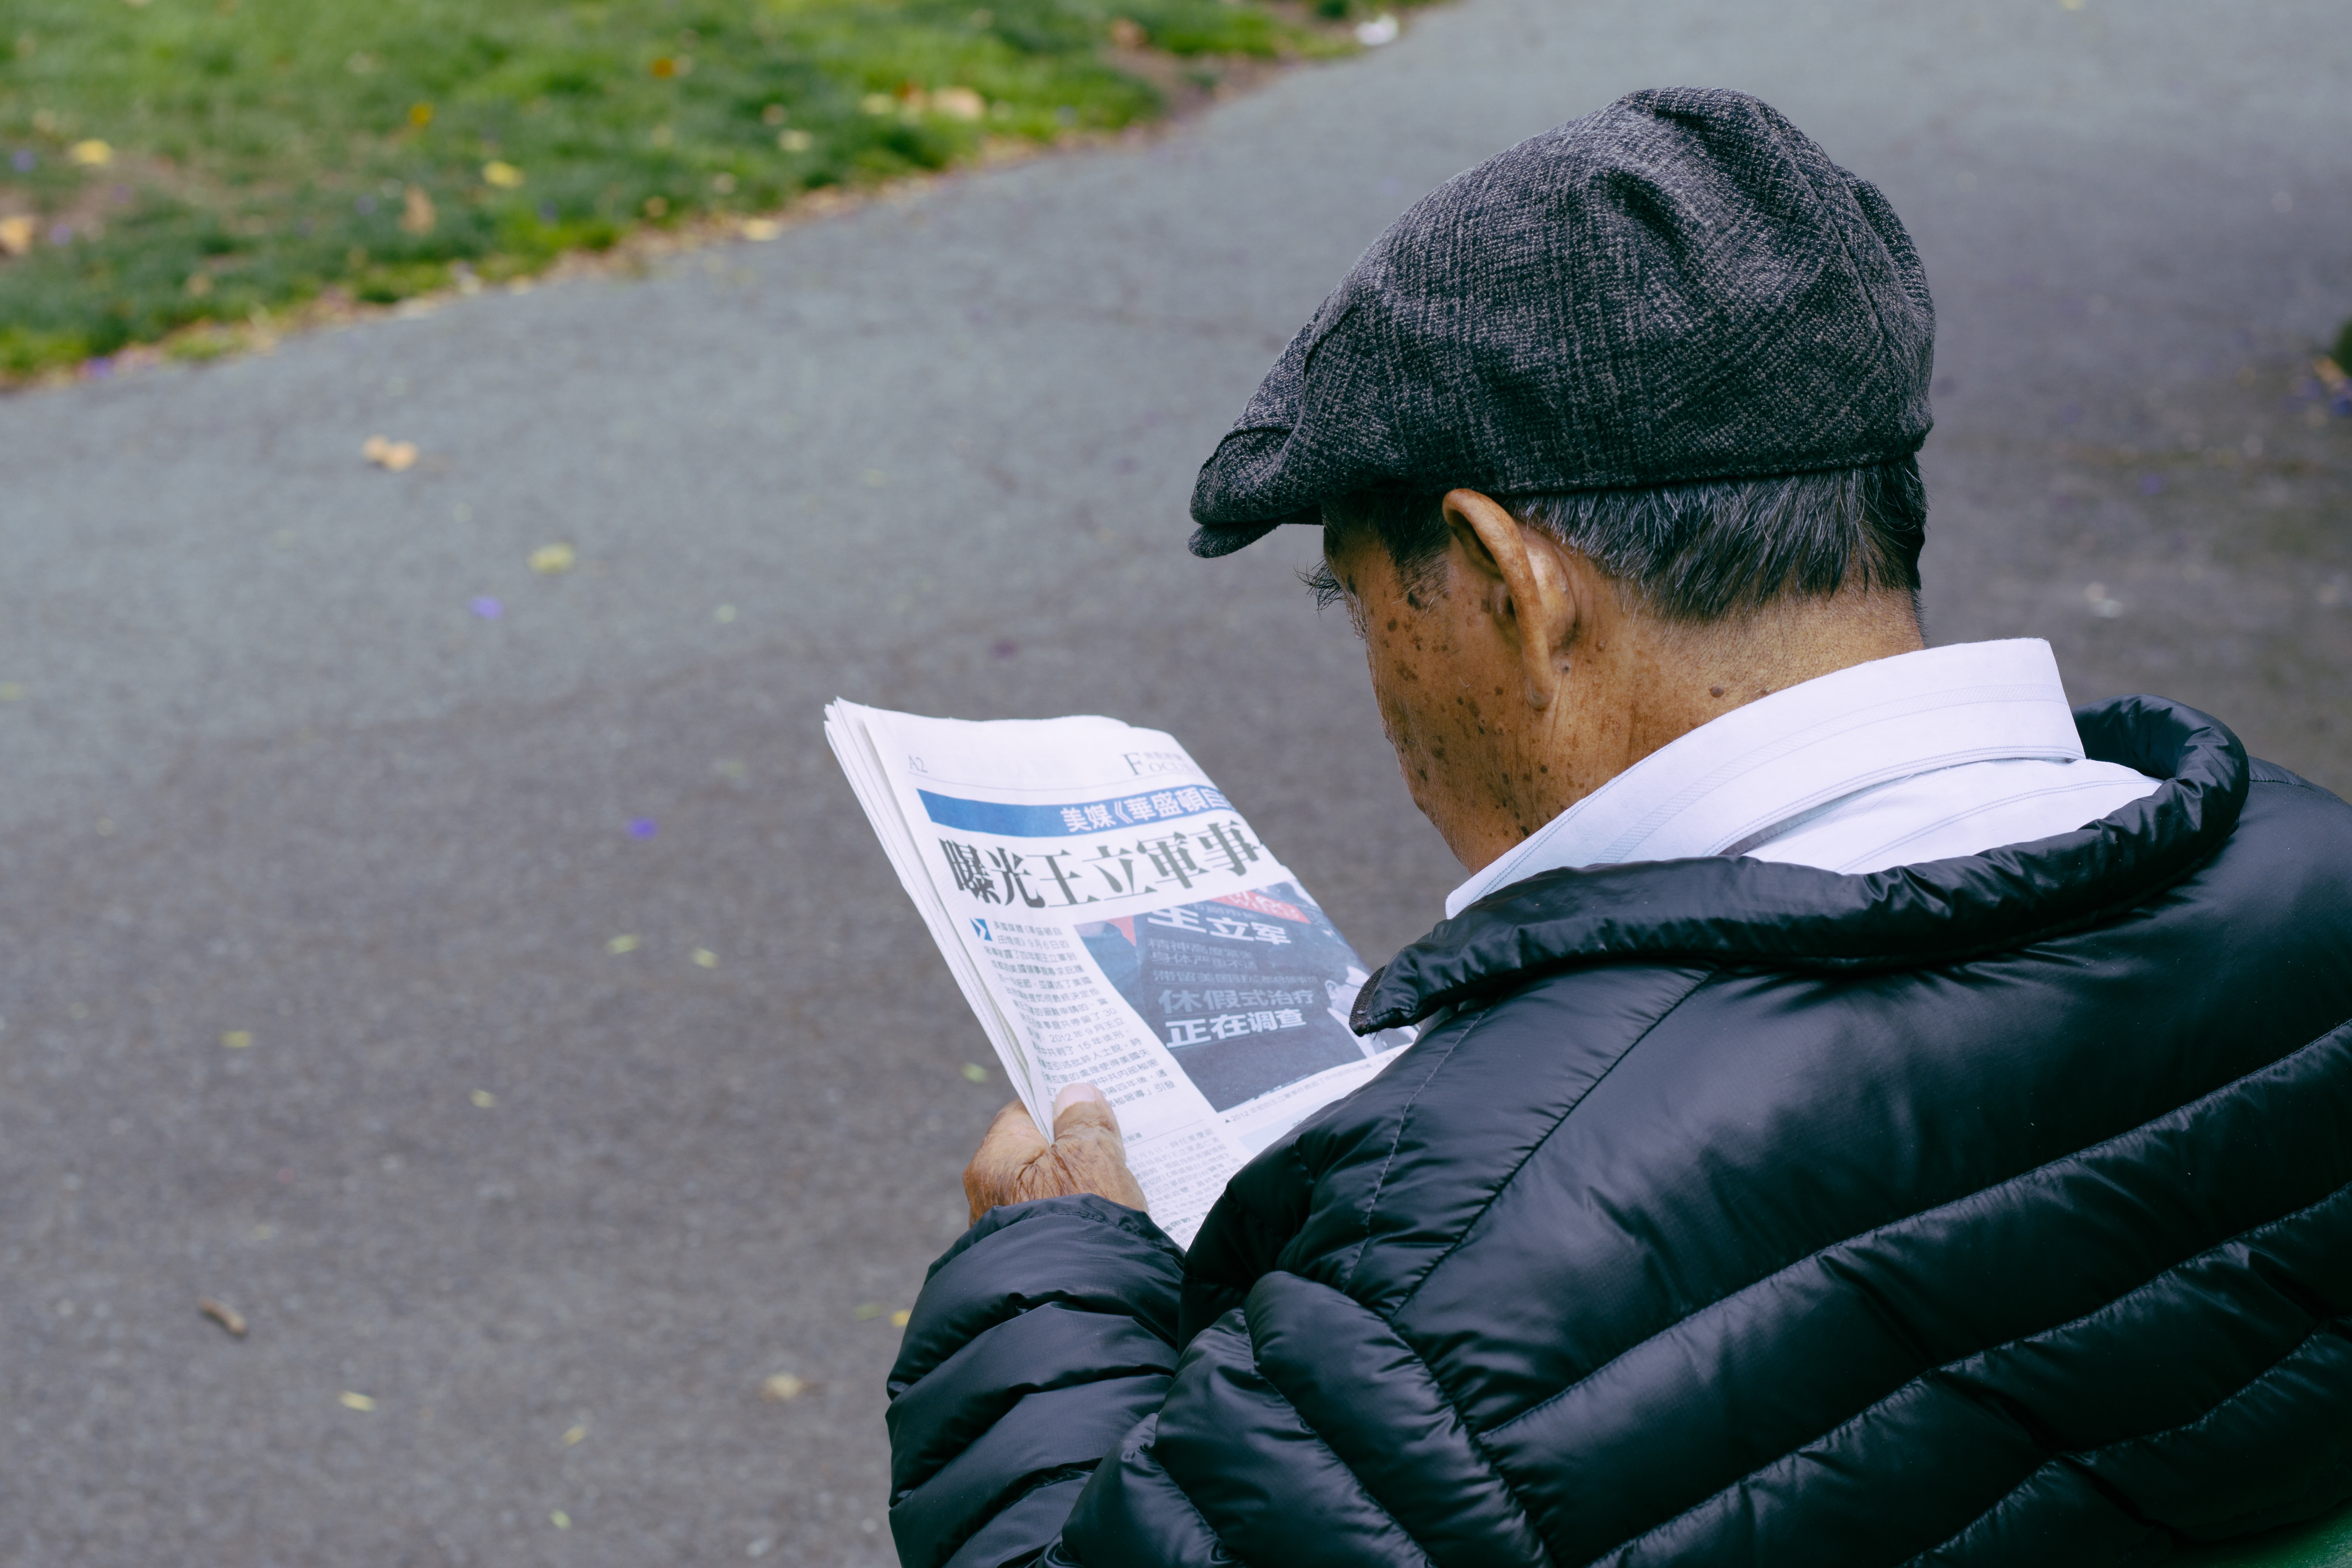 An older Chinese man stares down at a newspaper at Fisherman's Wharf